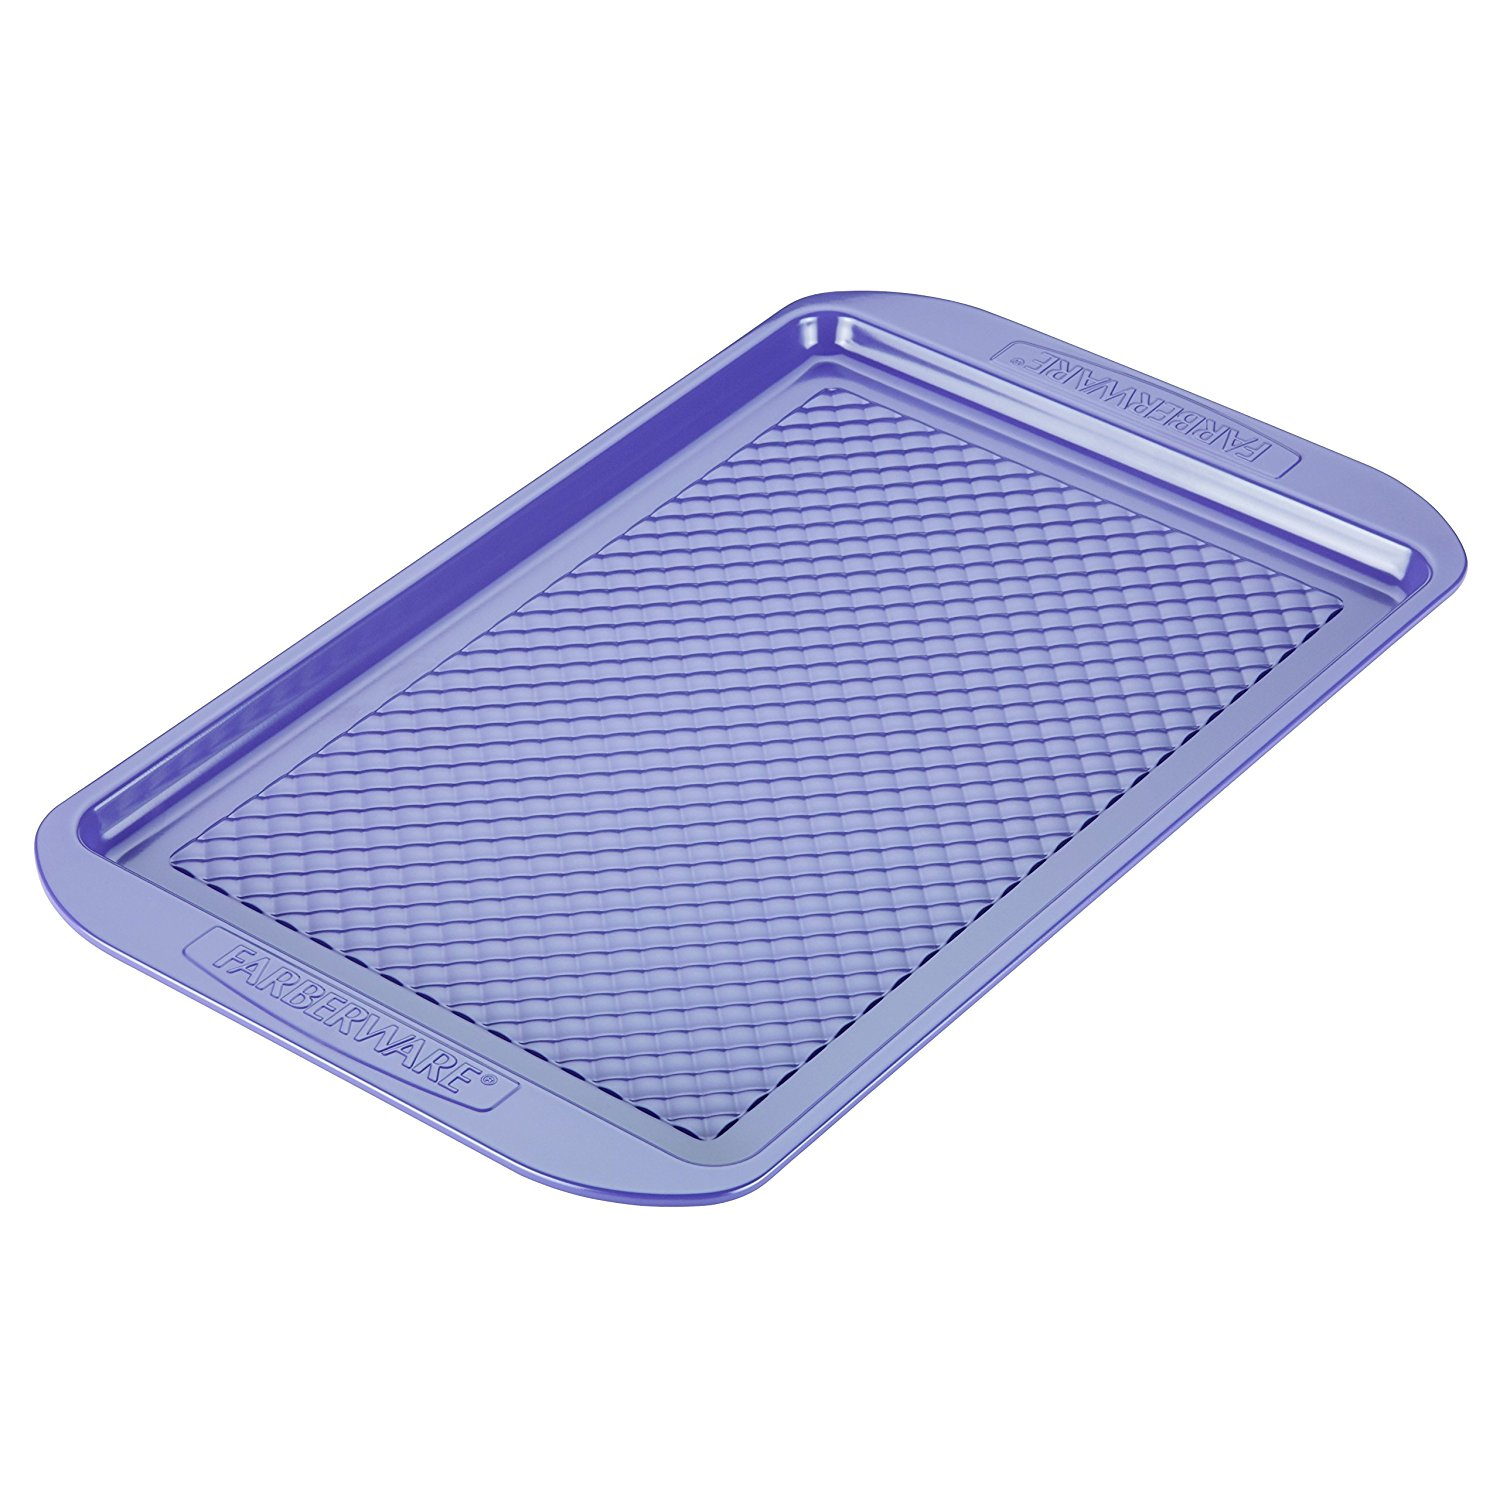 "46331 Purecook Hybrid Ceramic Nonstick Bakeware Baking SHeet and Cookie Pan, 10"" x 15\ by"